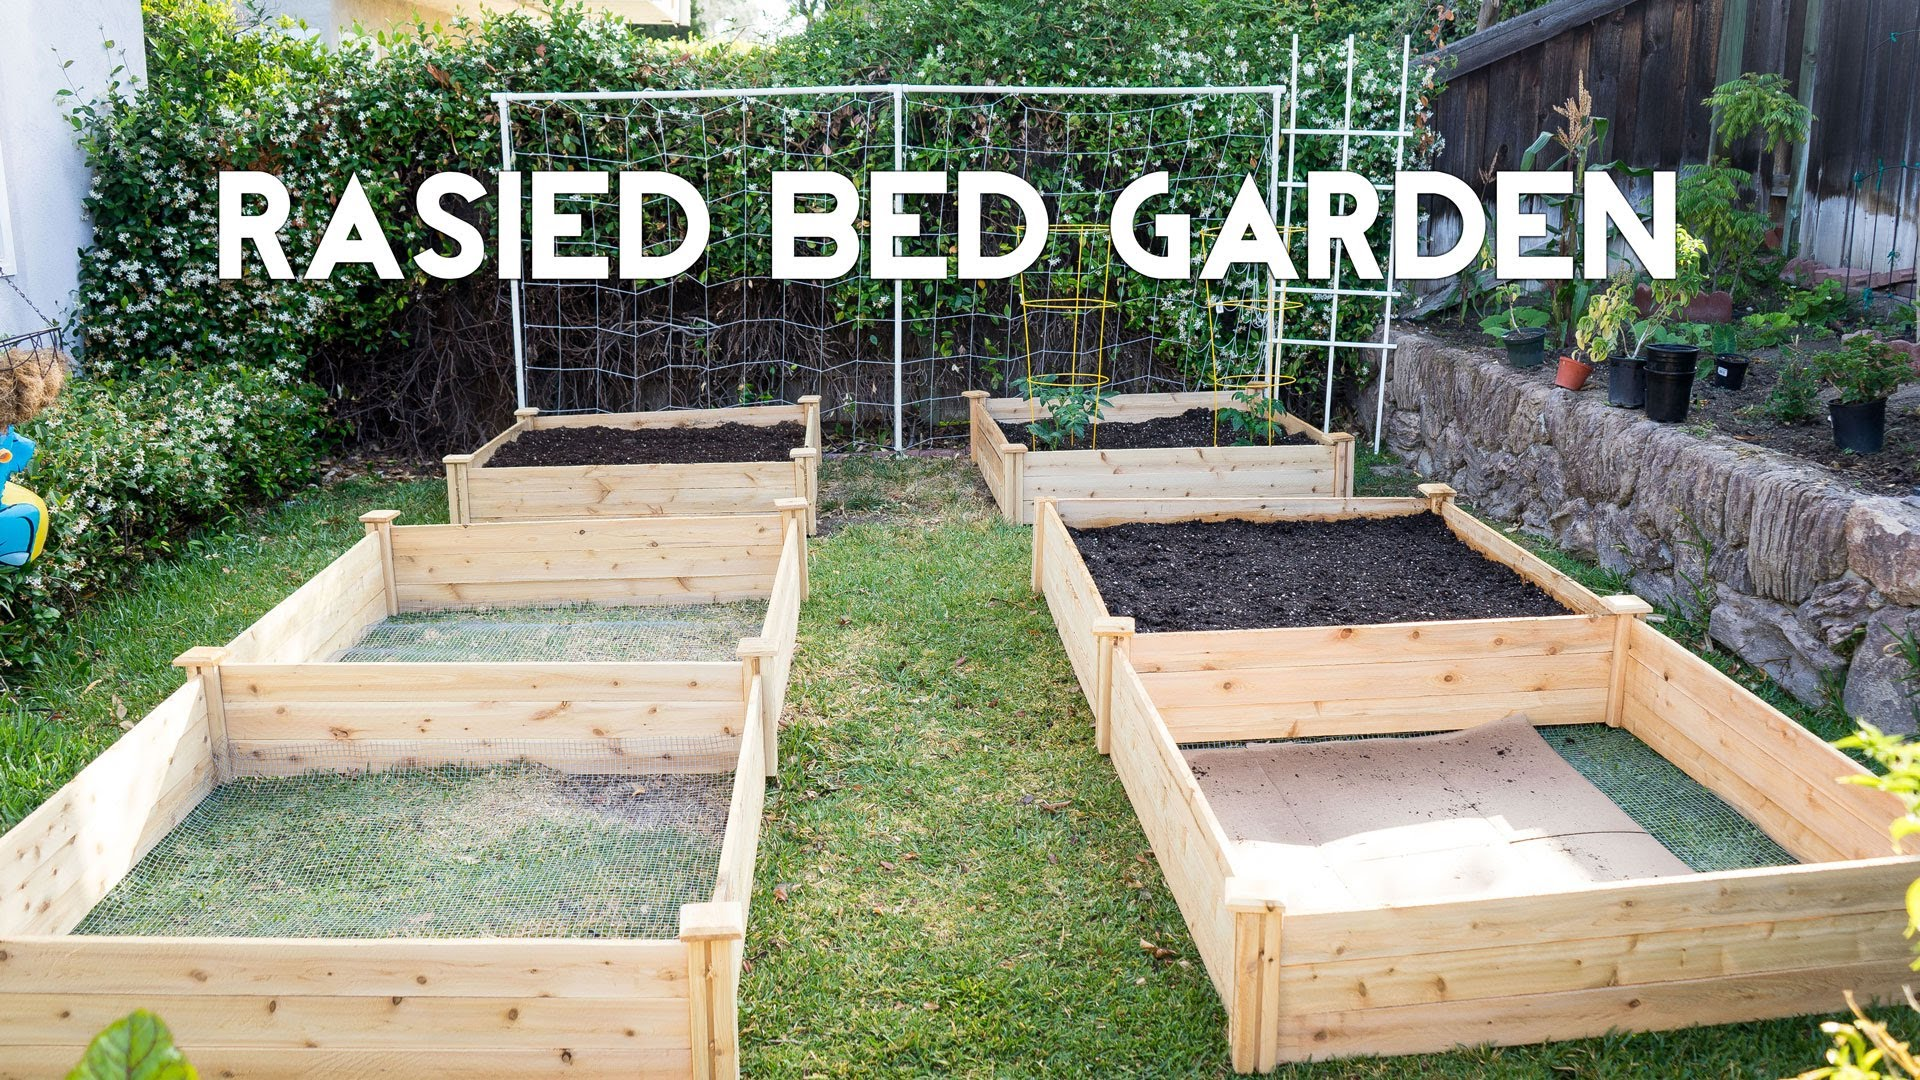 raised bed garden raised bed gardening - how to start a raised bed vegetable garden - youtube FXZBIWX